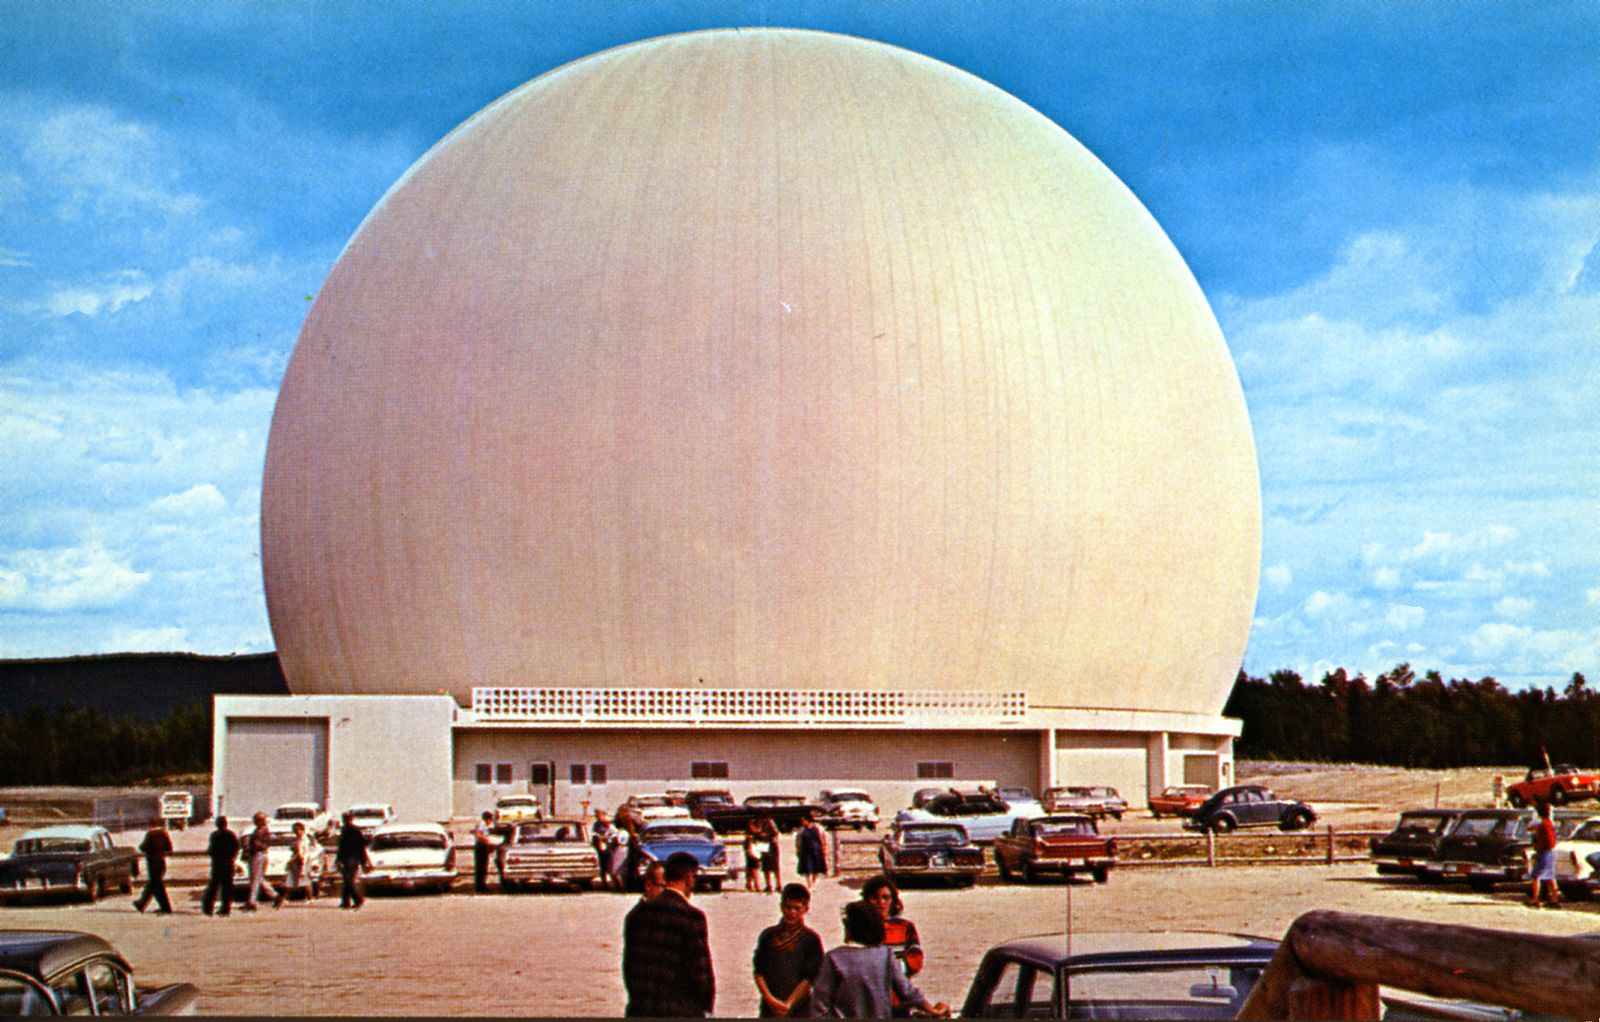 https://flic.kr/p/nfHcz8 | Bell System Space Dome Andover ME | Bell System Space Dome, Project Telstar, housing 380-ton Horn Antenna, 94 feet high and 177 feet long. Can amplify signals 500,000 times Signal received from satellite is one-trillionth of a watt. Earth Station for Communicating by Satellites